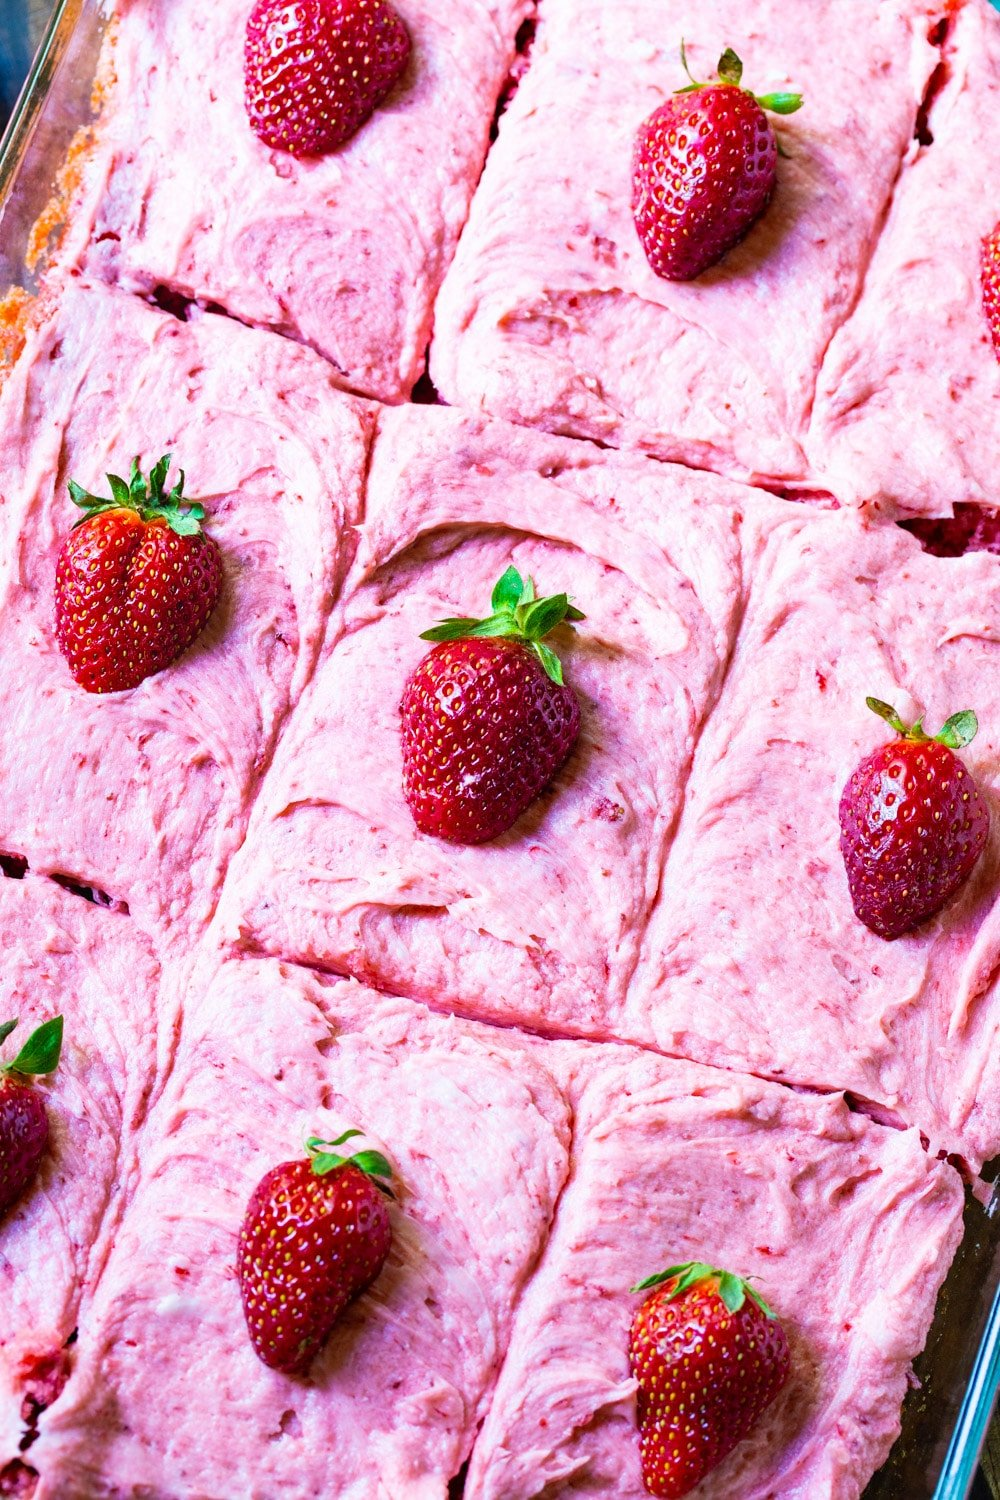 Sheet cake cut into squares in pan. Each one topped with a strawberry.